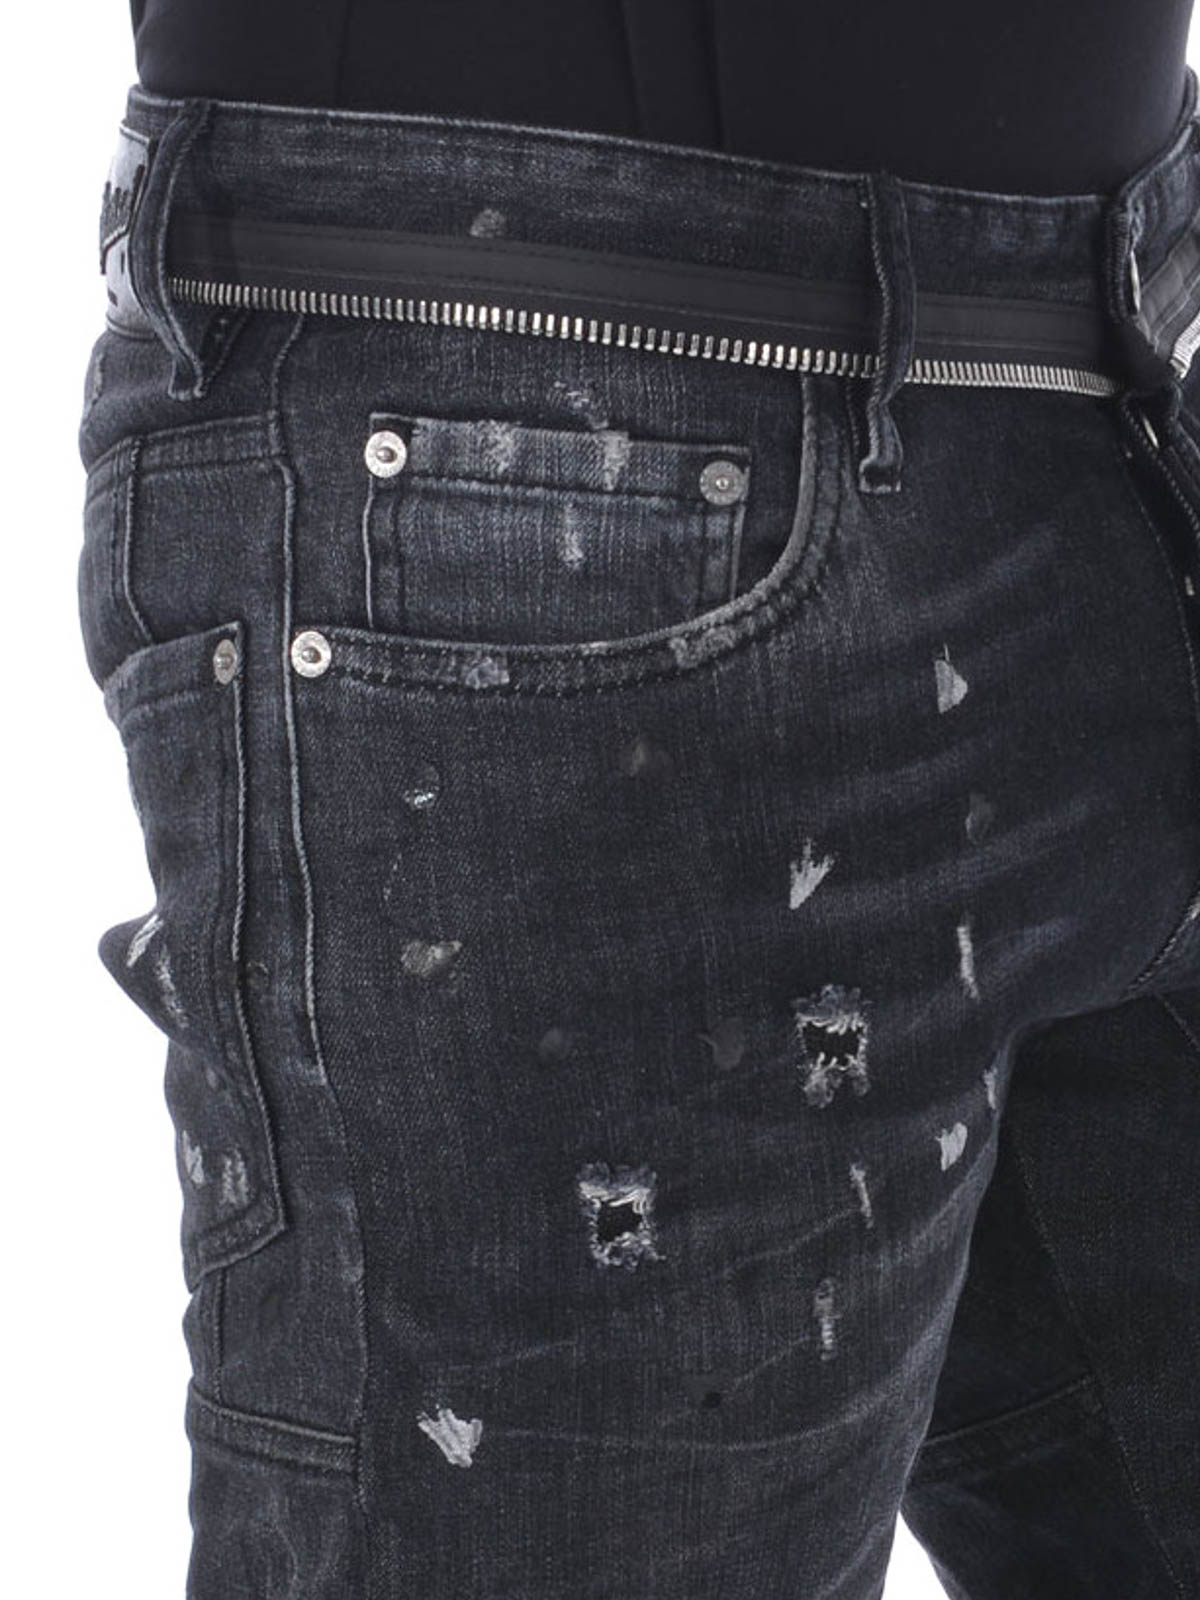 Shop for and buy mens ripped jeans online at Macy's. Find mens ripped jeans at Macy's.